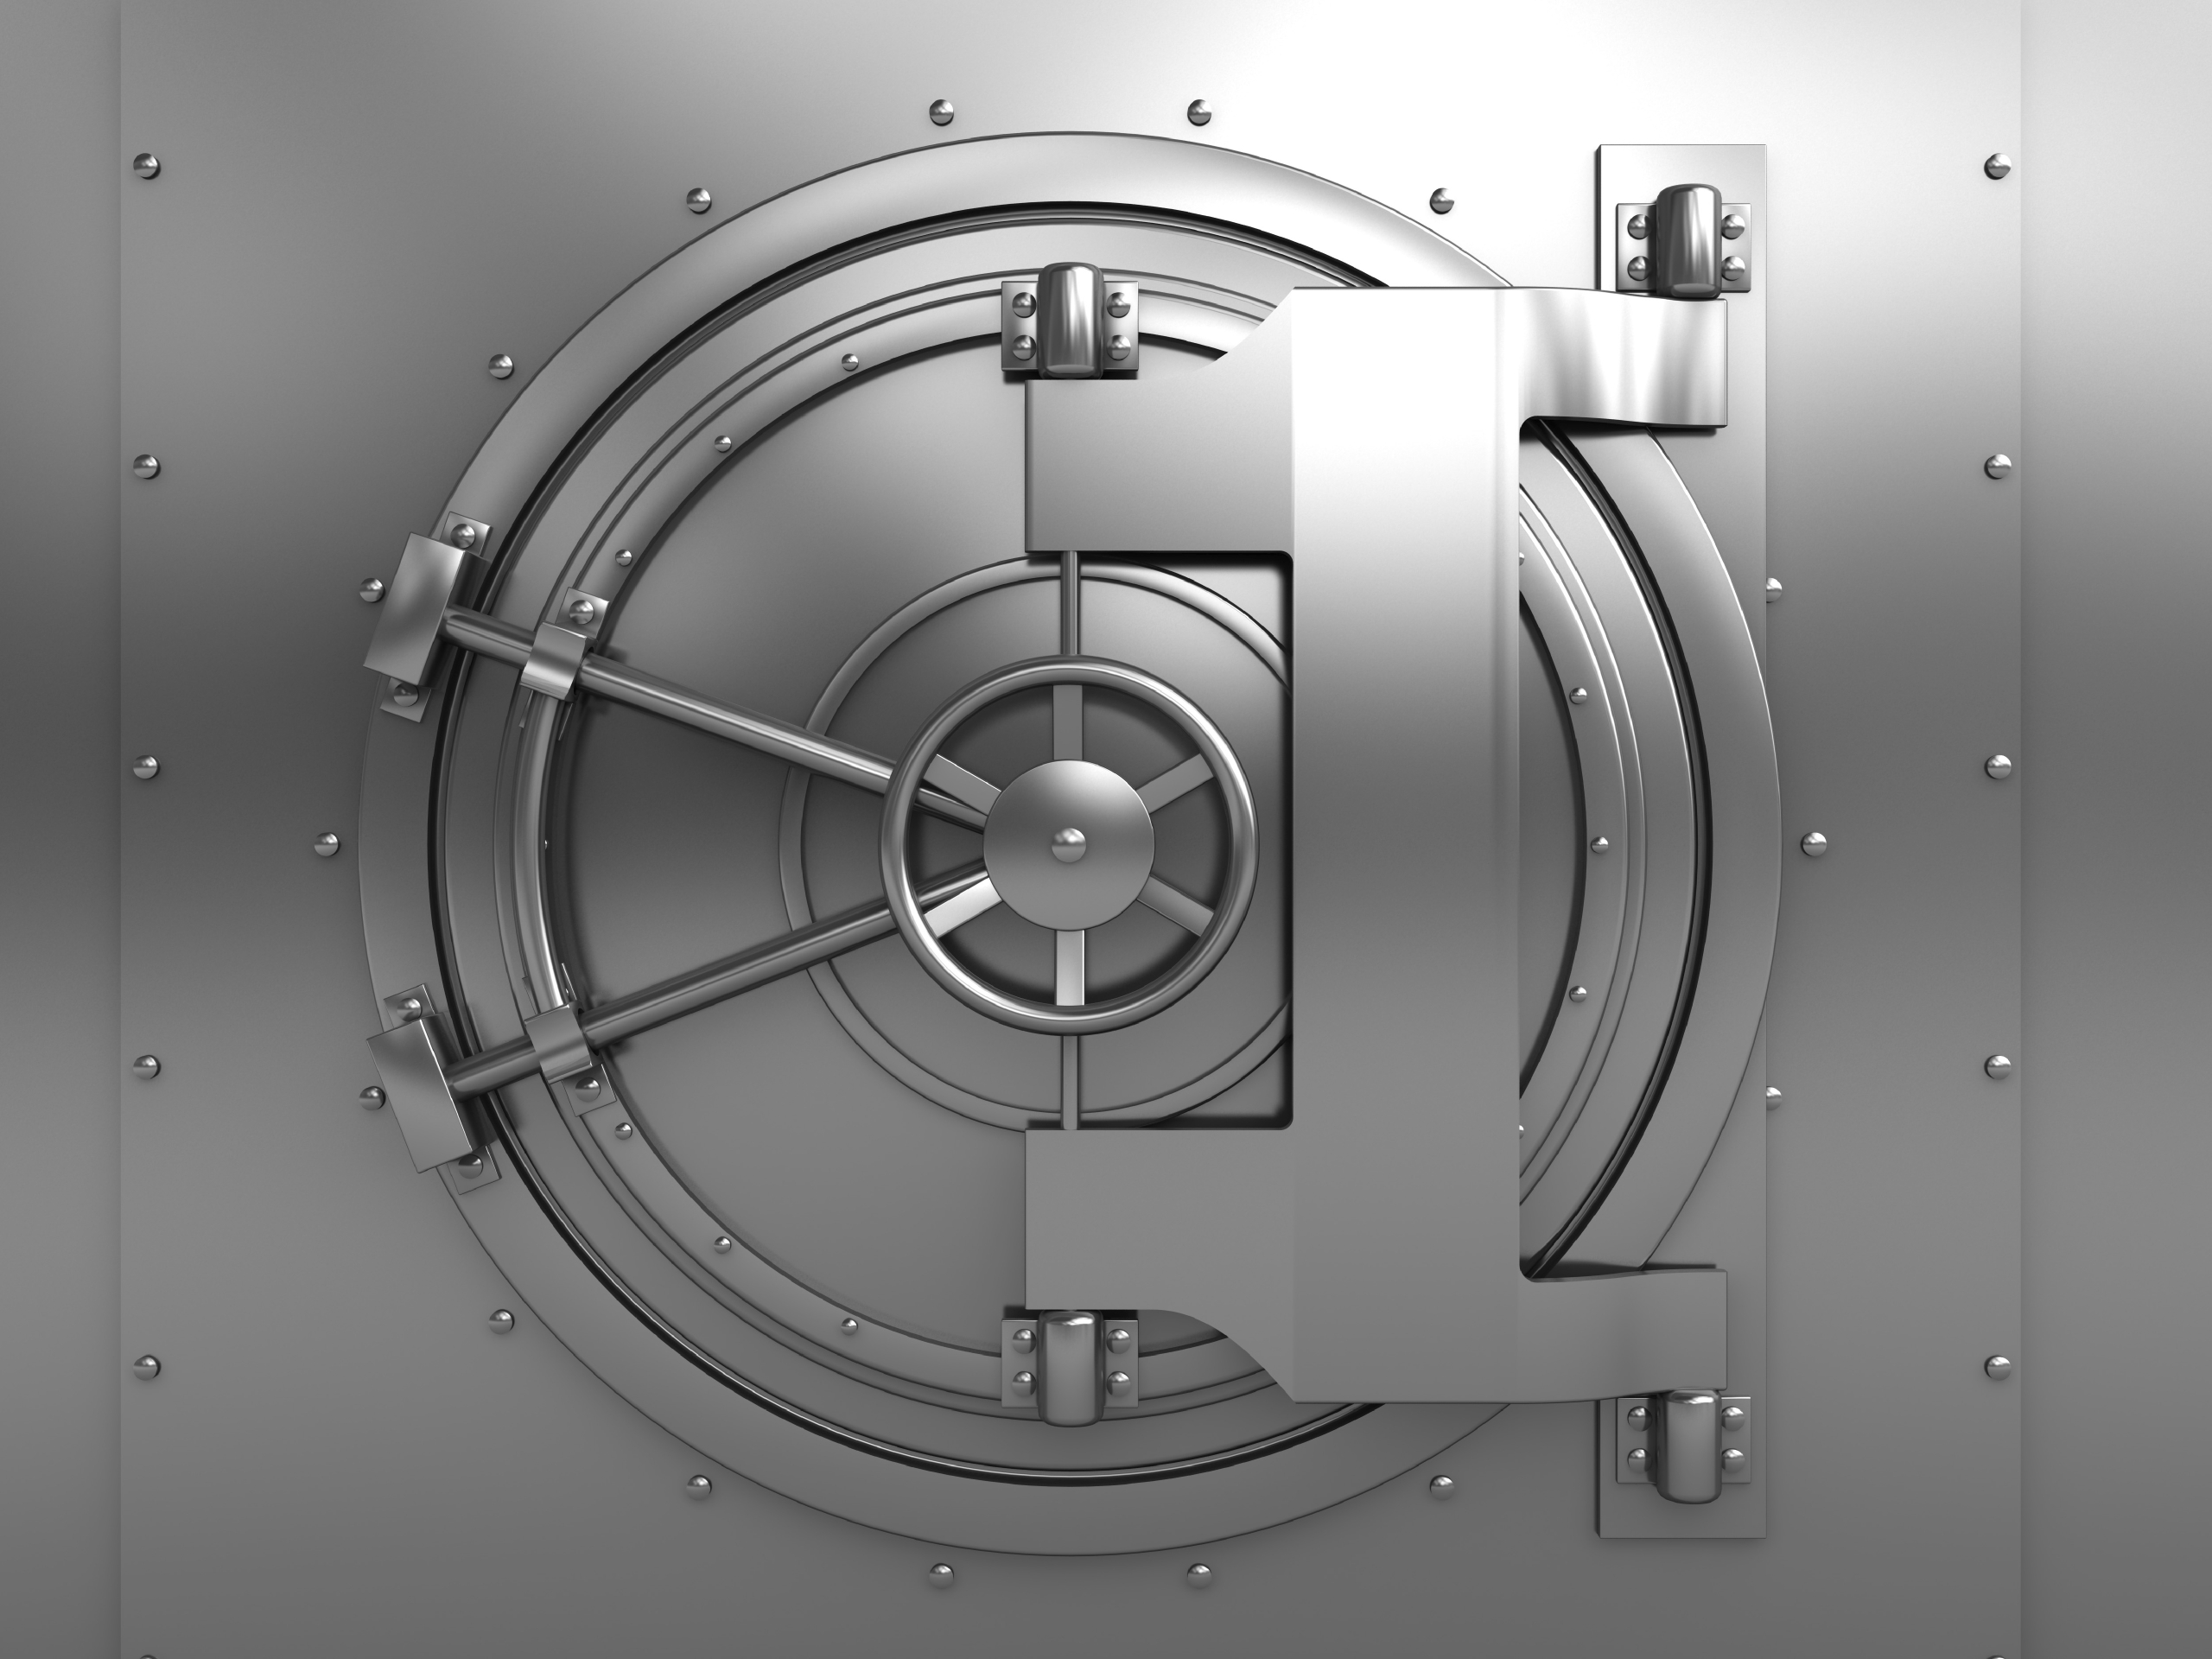 Bank vault door clipart banner royalty free Vault Door Clip Art – Clipart Free Download banner royalty free